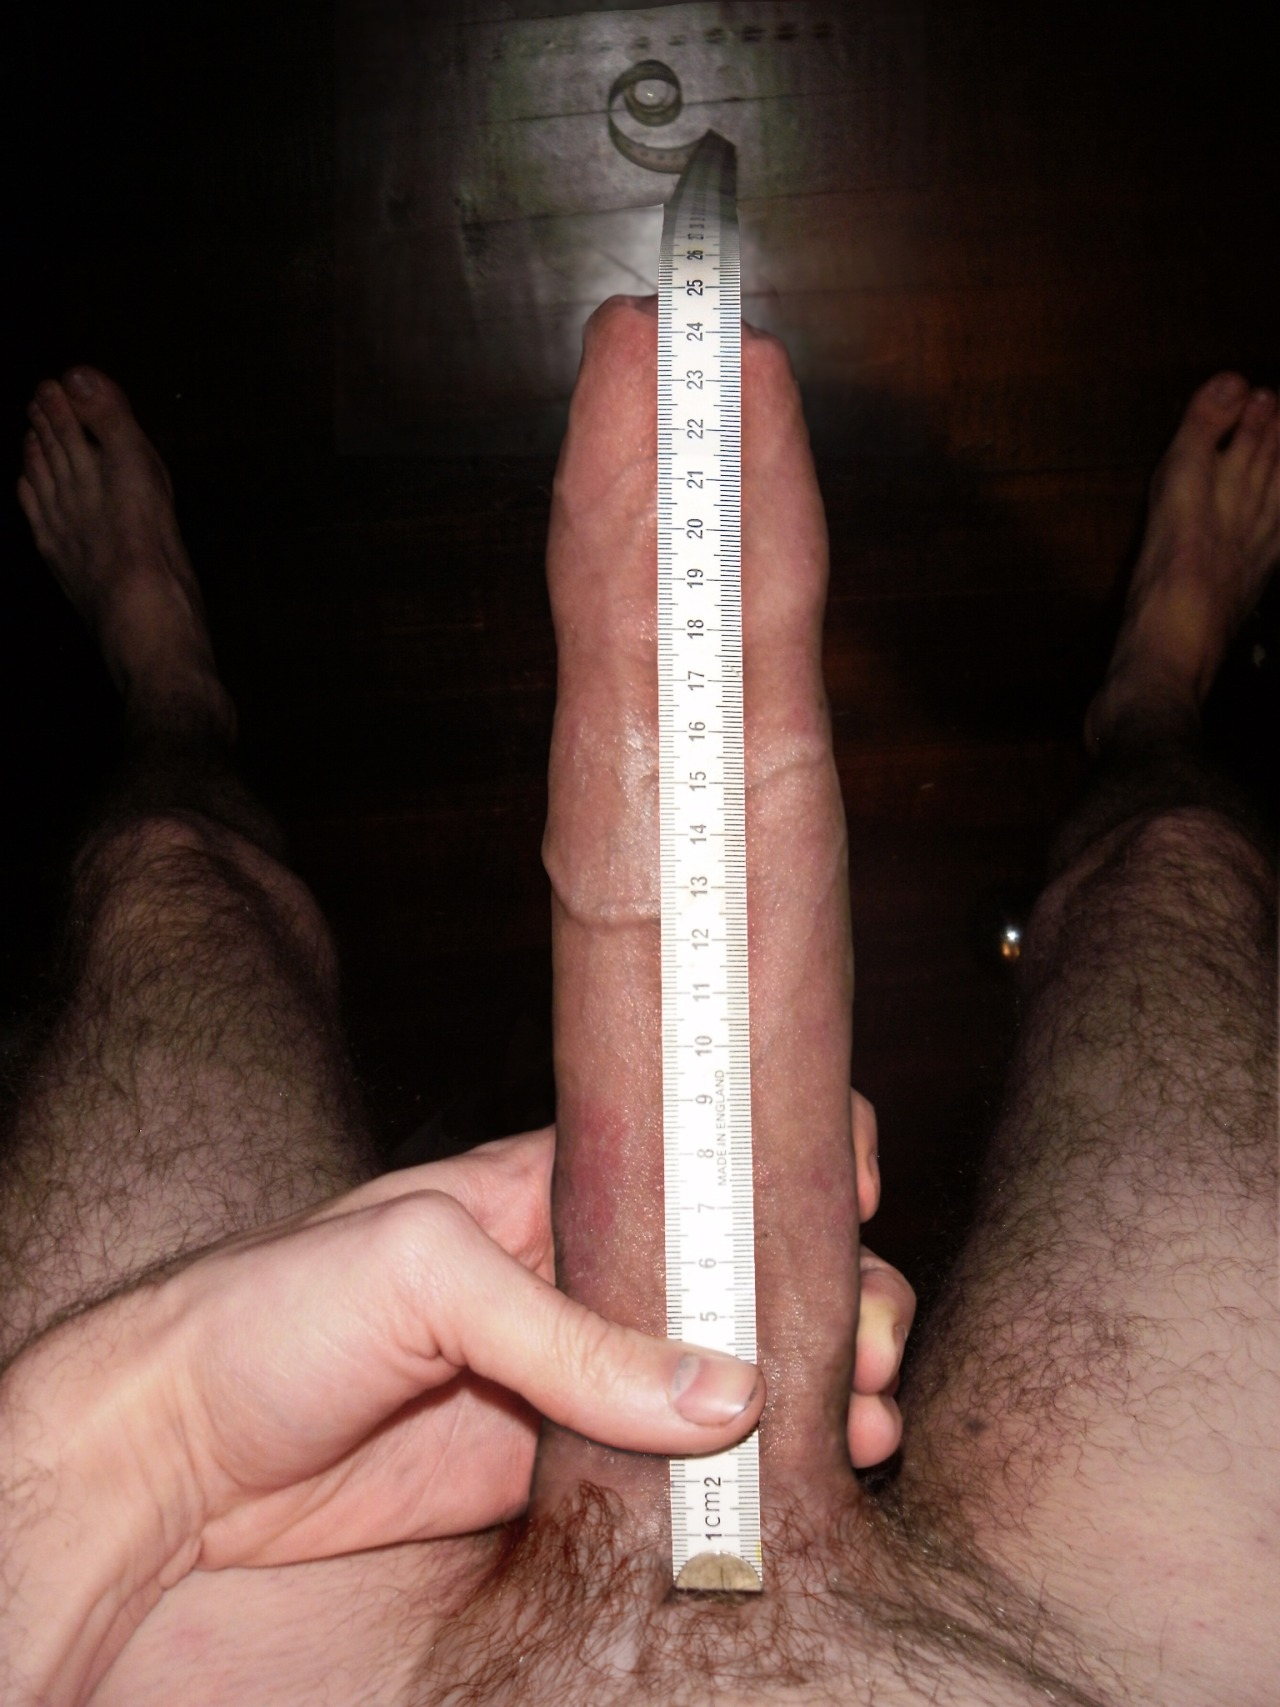 Size of a big dick